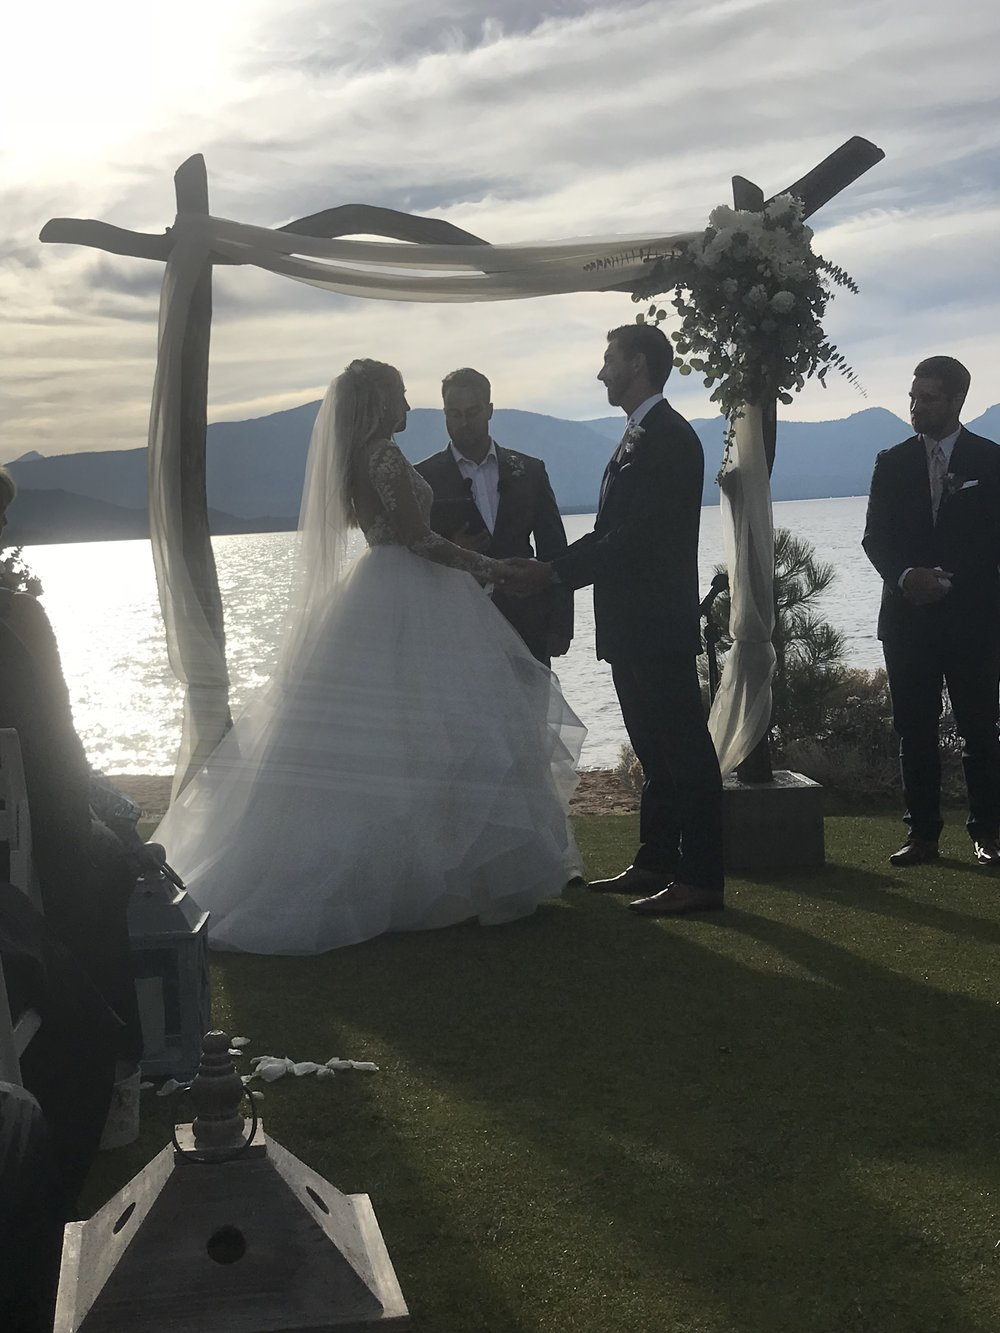 How dreamy is this ceremony site? It was truly magical.